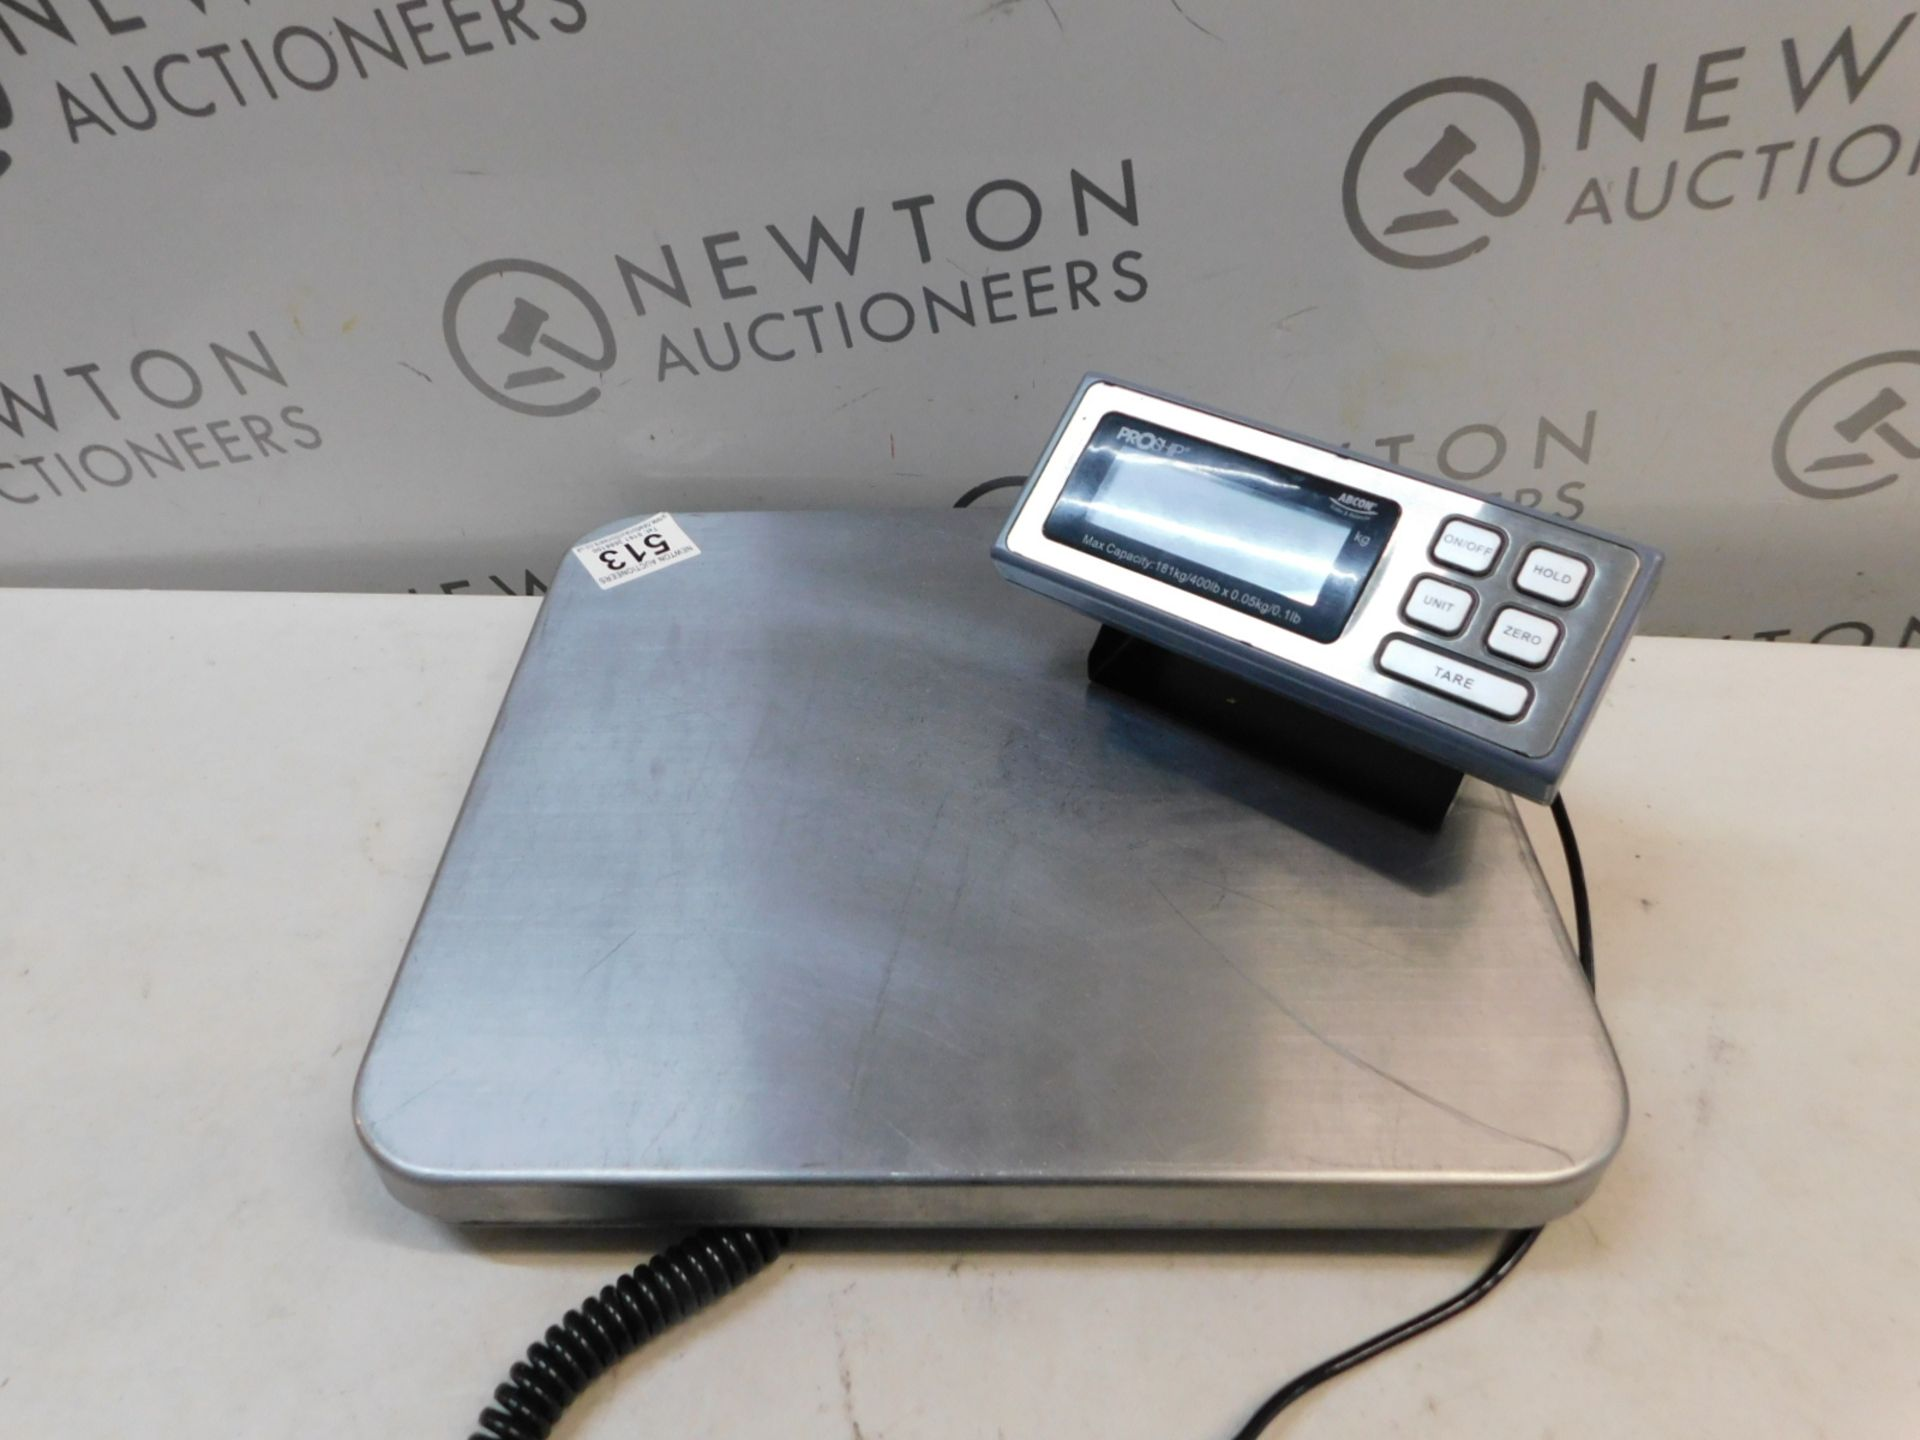 Lot 513 - 1 ABCON PROSHIP LARGE HEAVY DUTY ELECTRONIC SCALE (181KG/ 400LBS CAPACITY) RRP £129.99